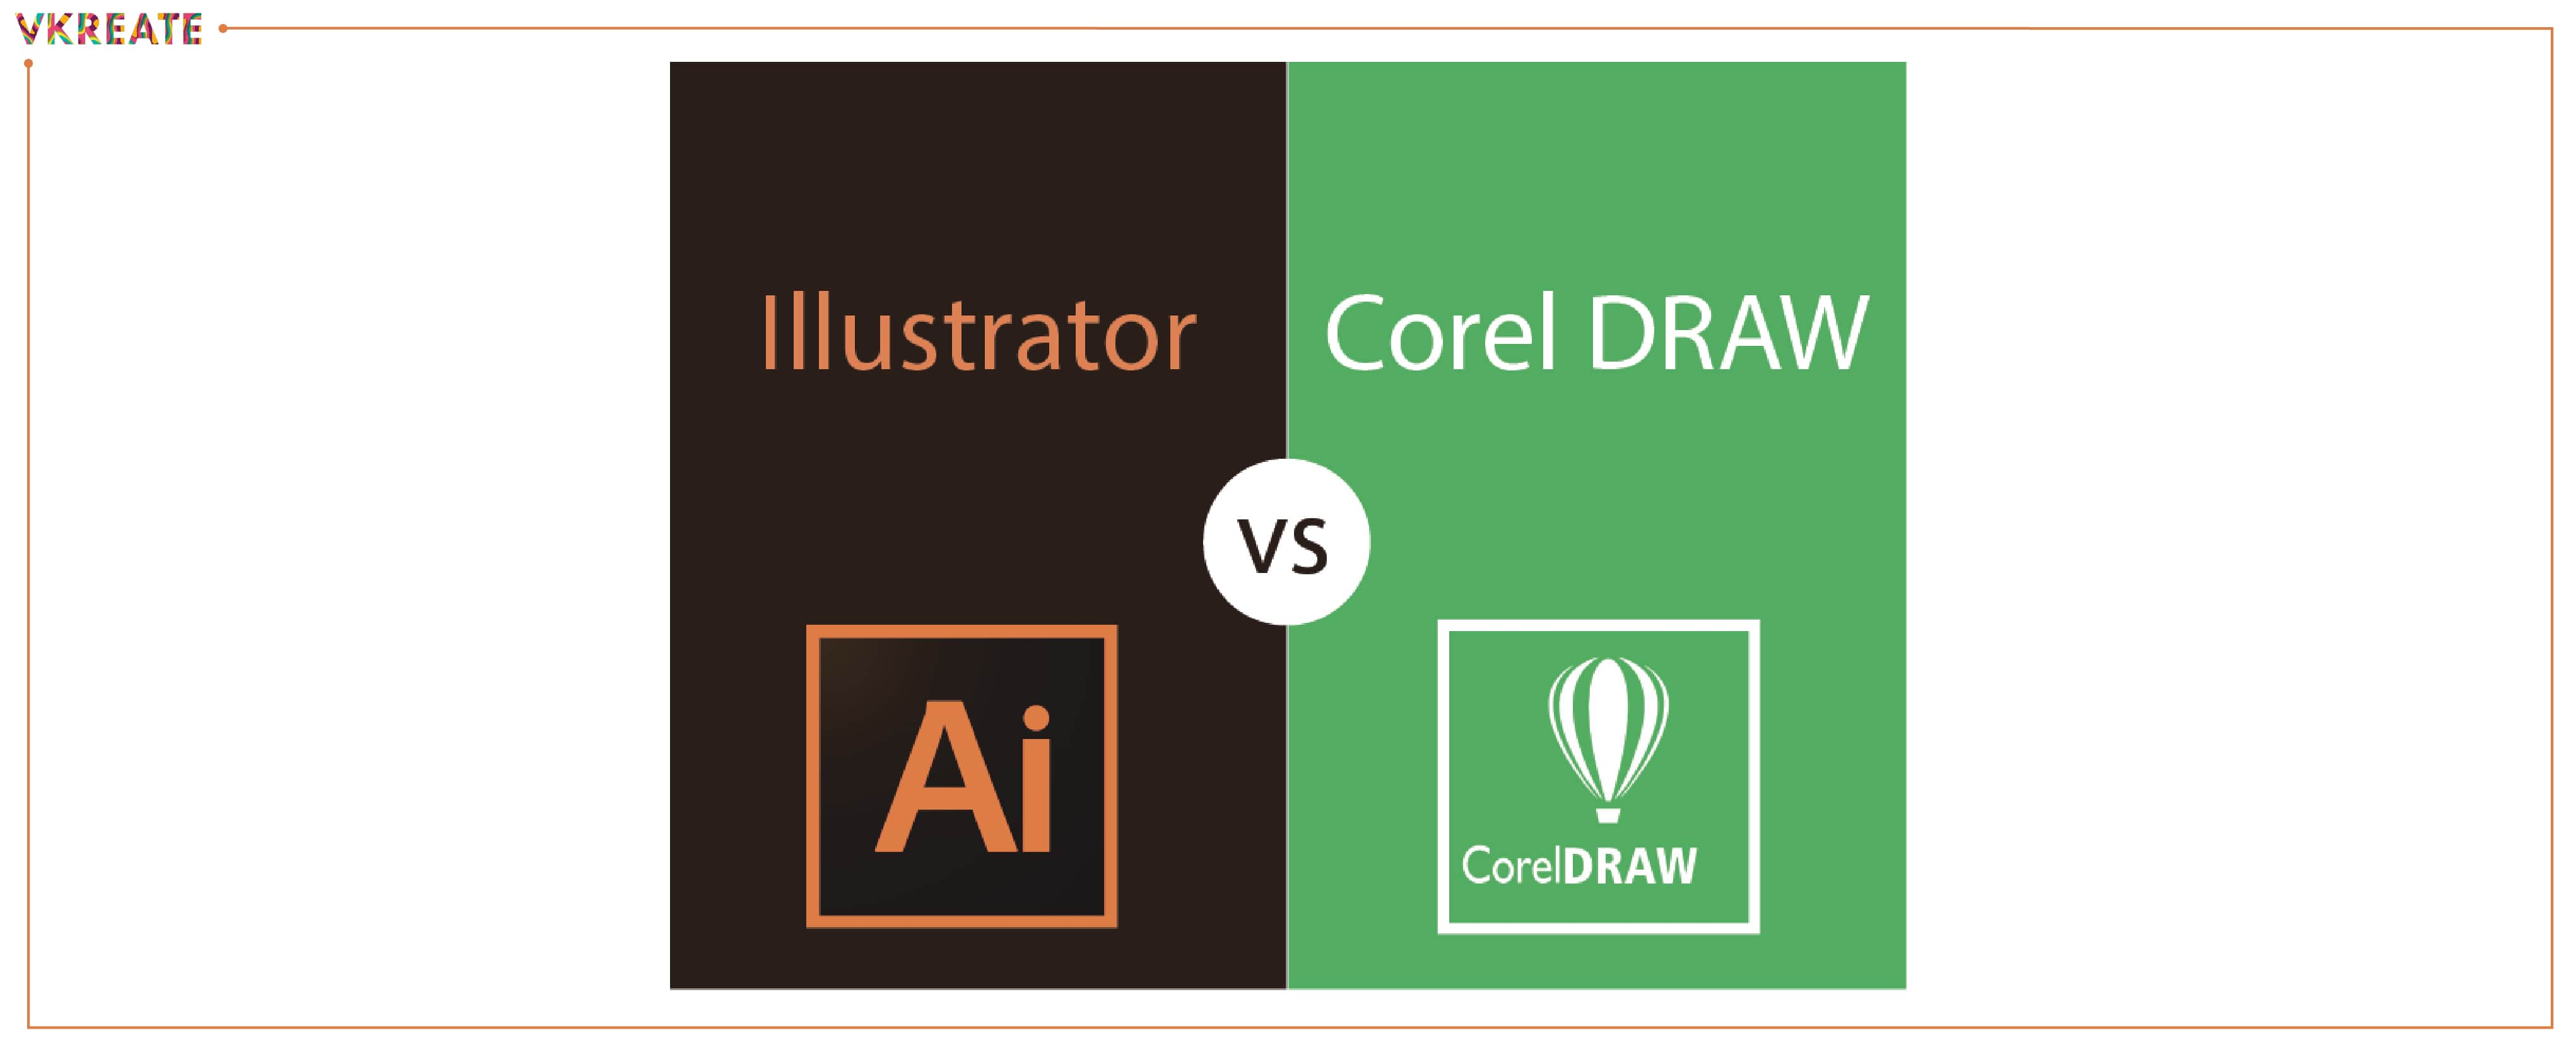 CorelDraw Vs Adobe Illustrator: Which is better in 2020?